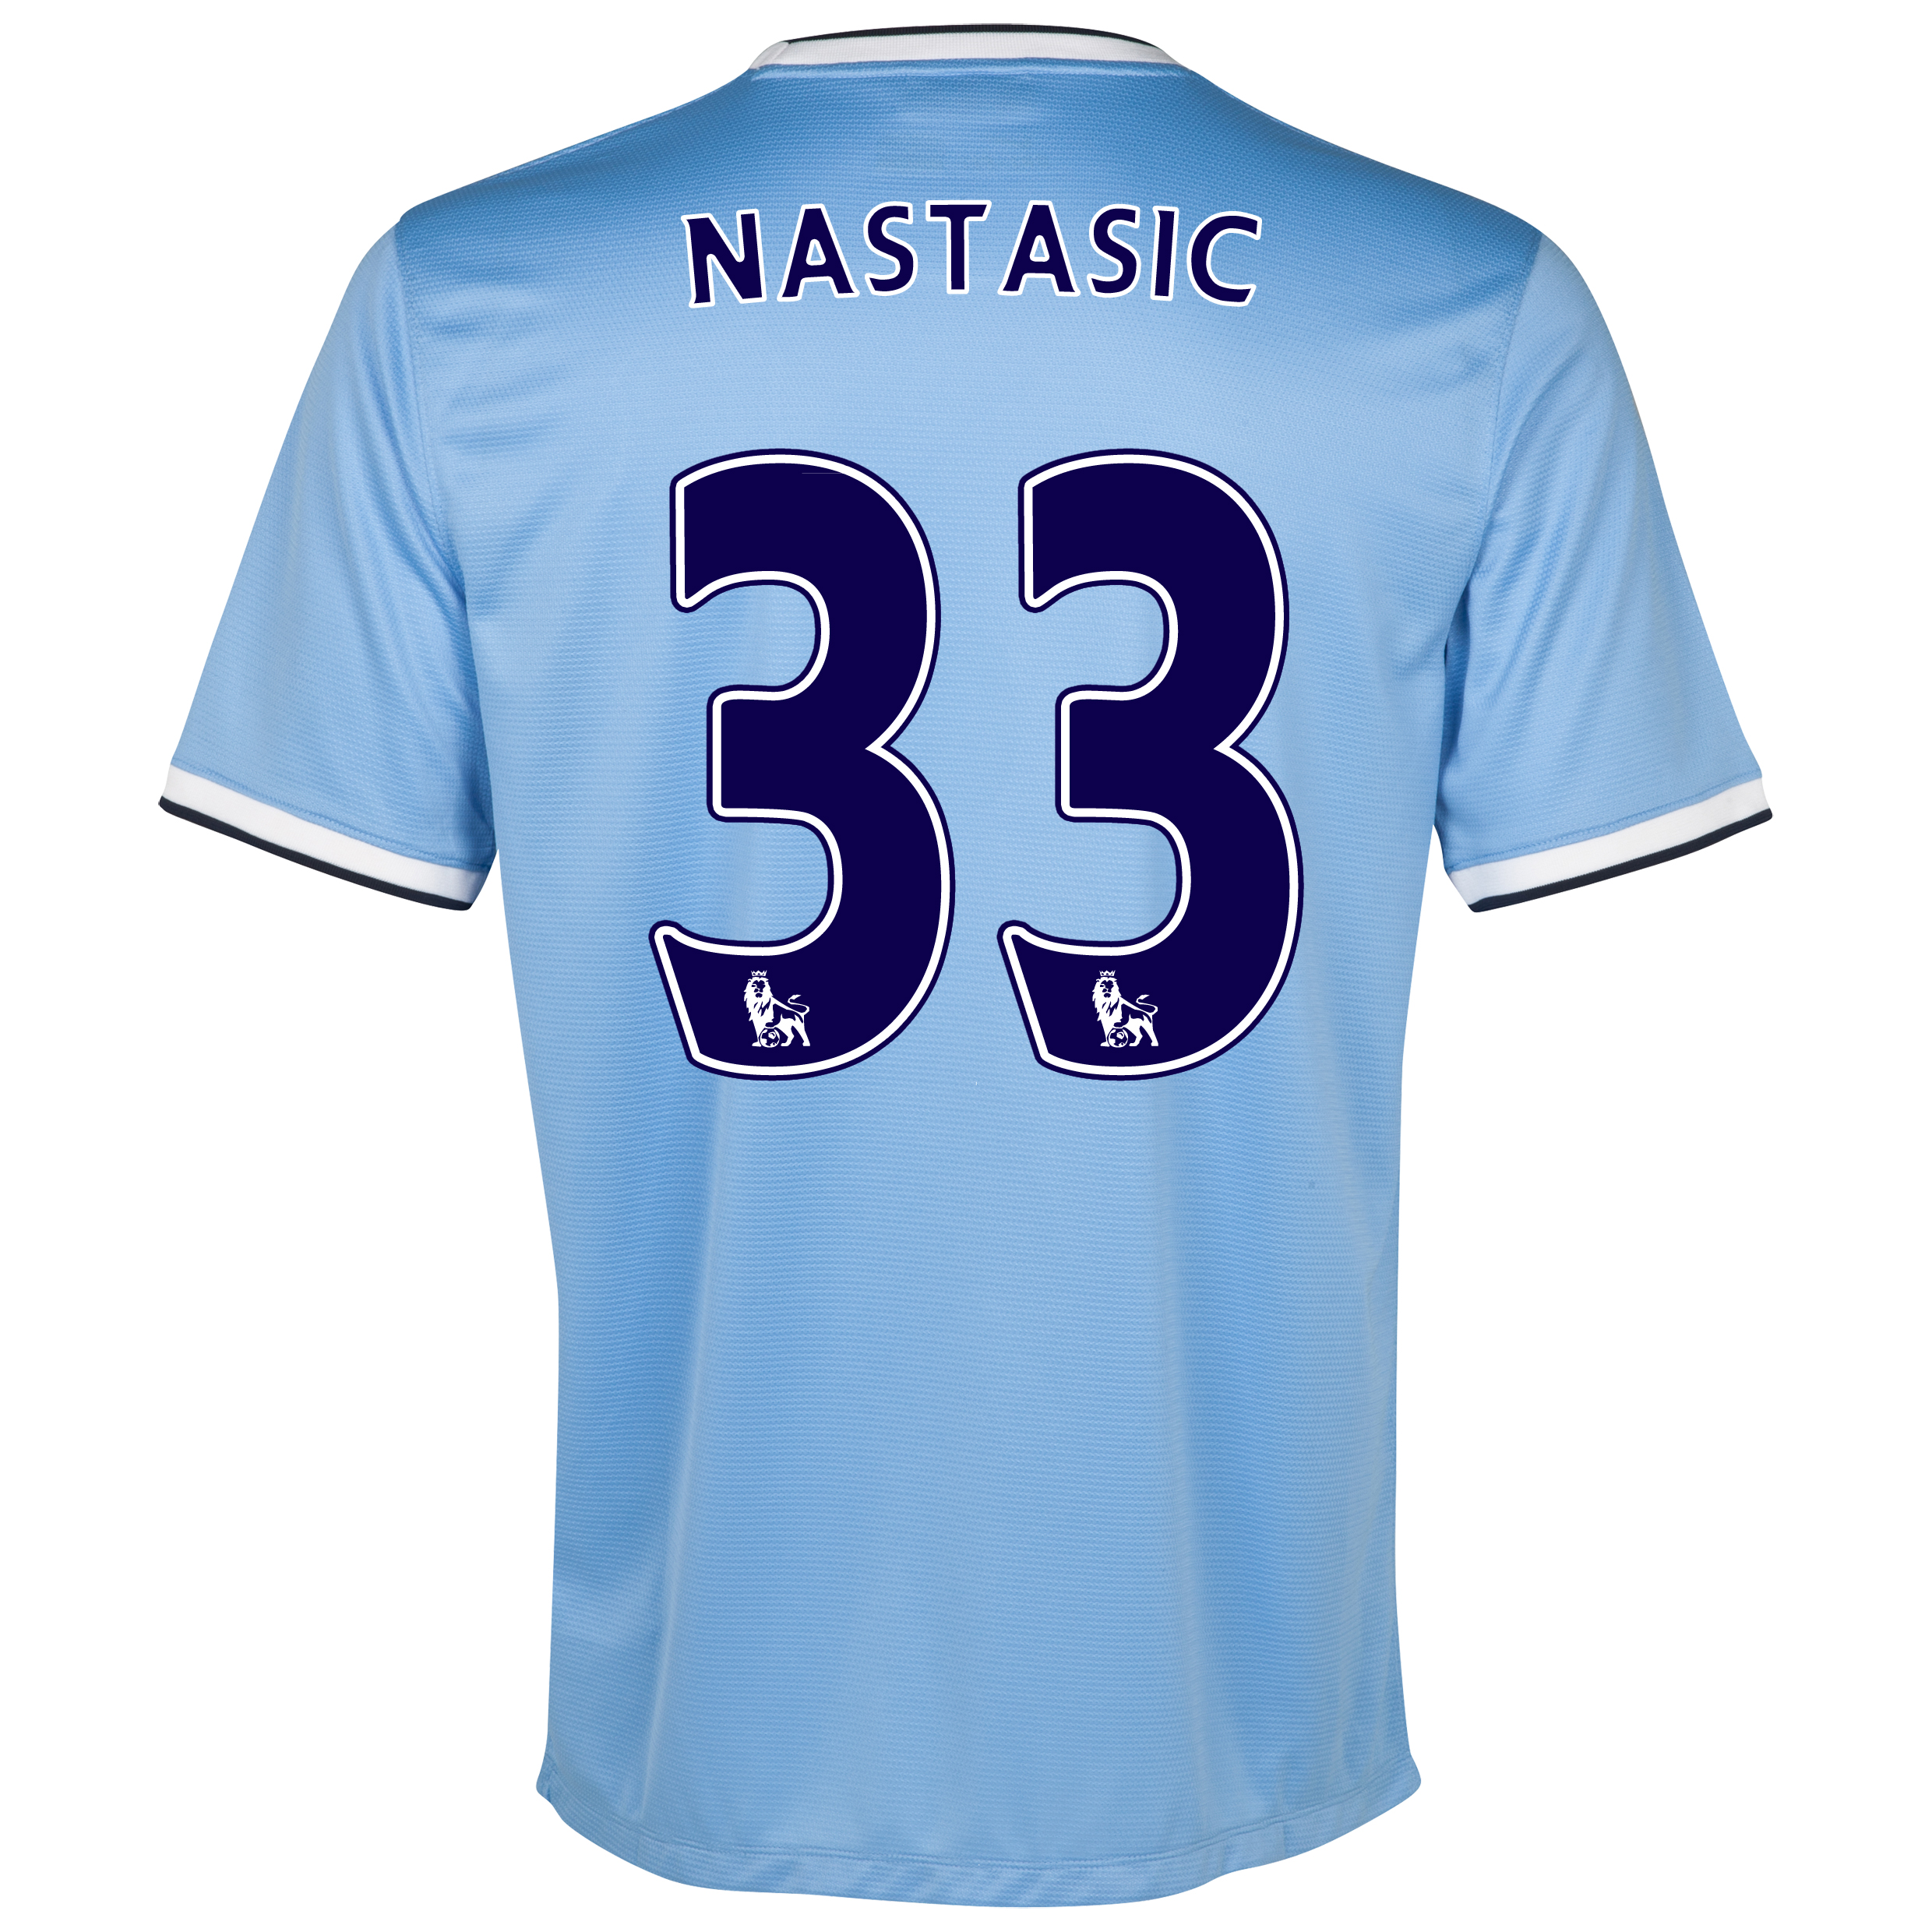 Manchester City Home Shirt 2013/14 with Nastasic 33 printing